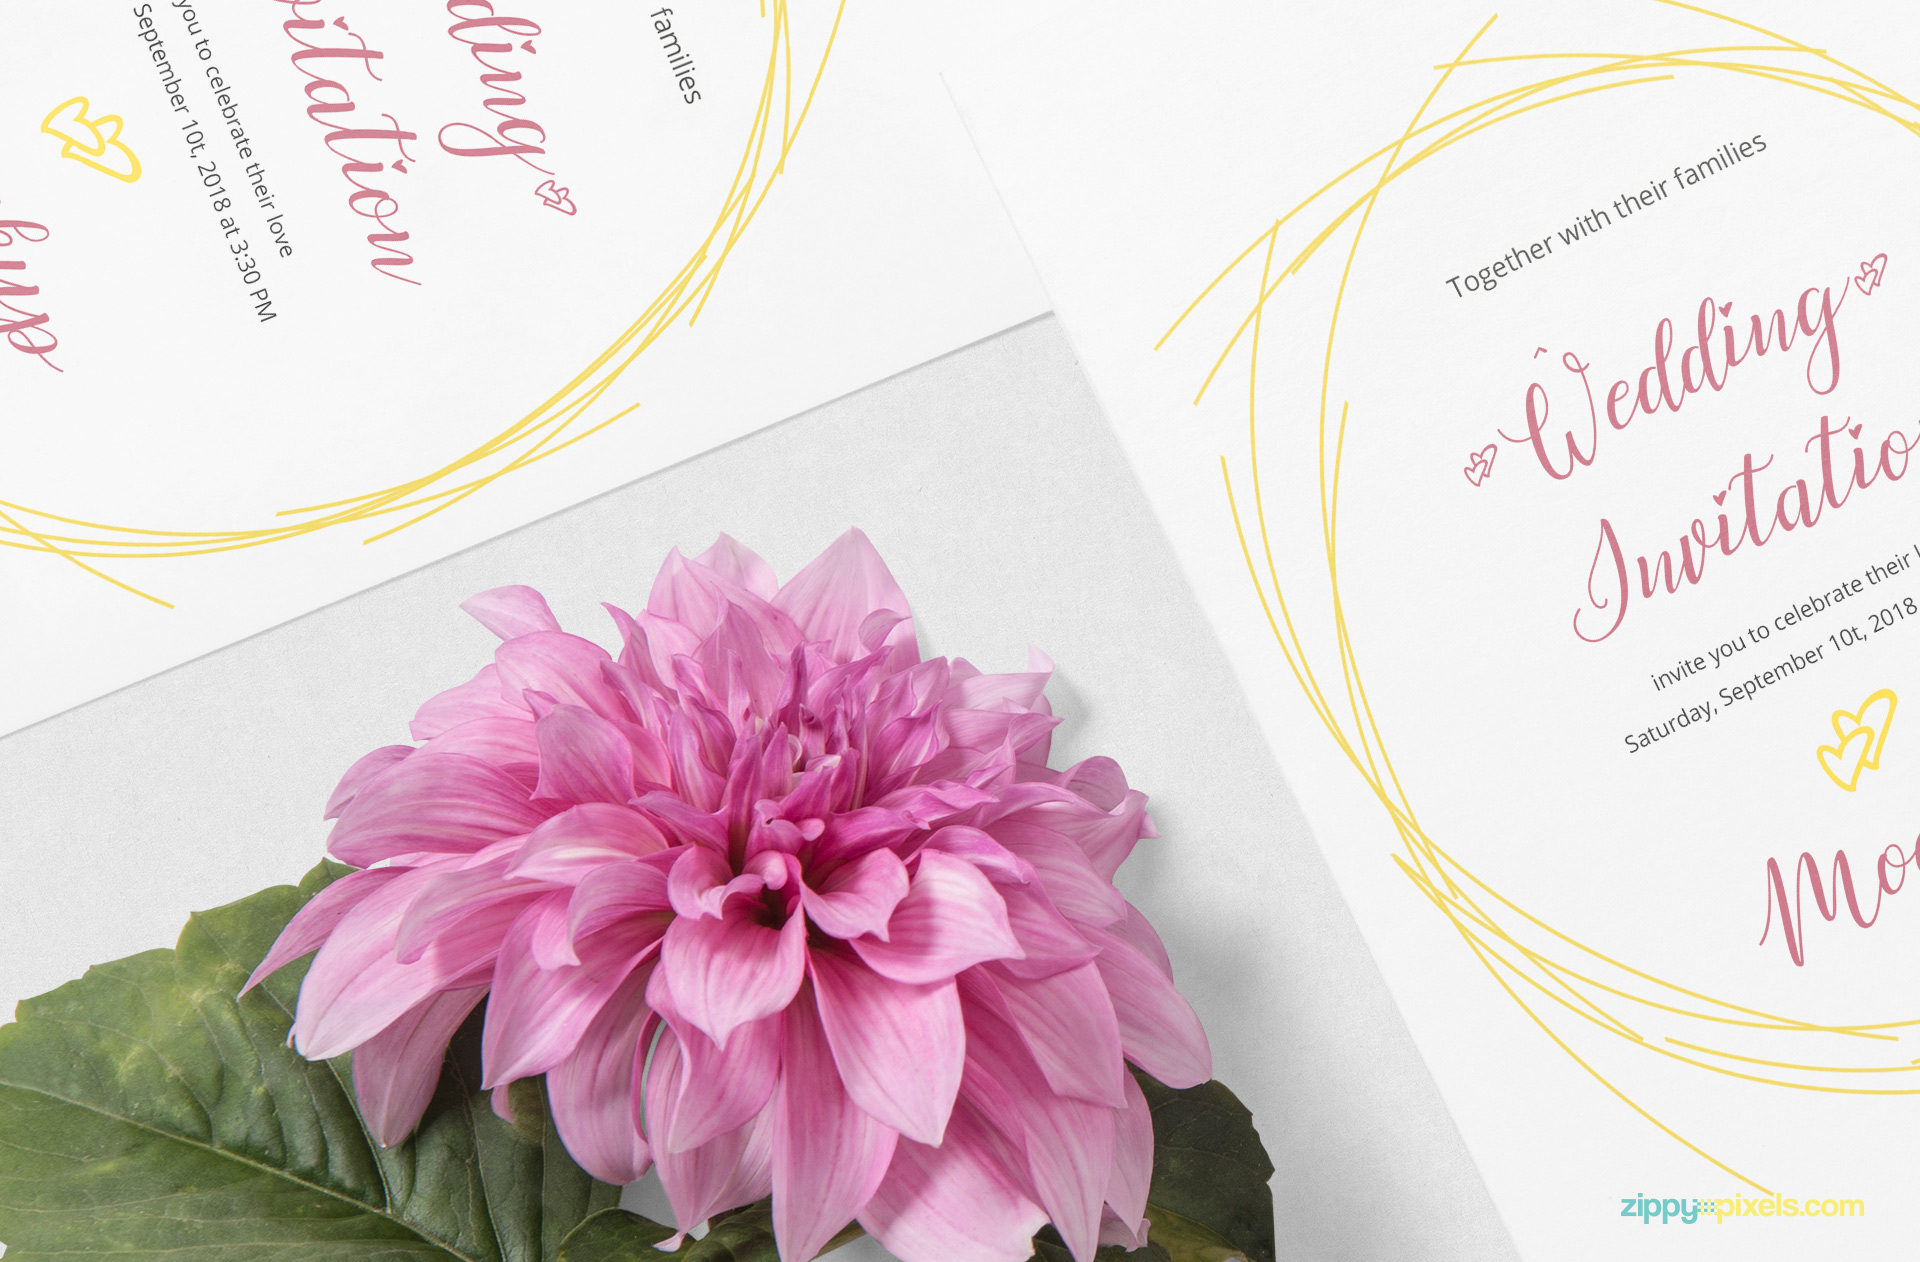 A beautiful hide-able flower is placed beside card.